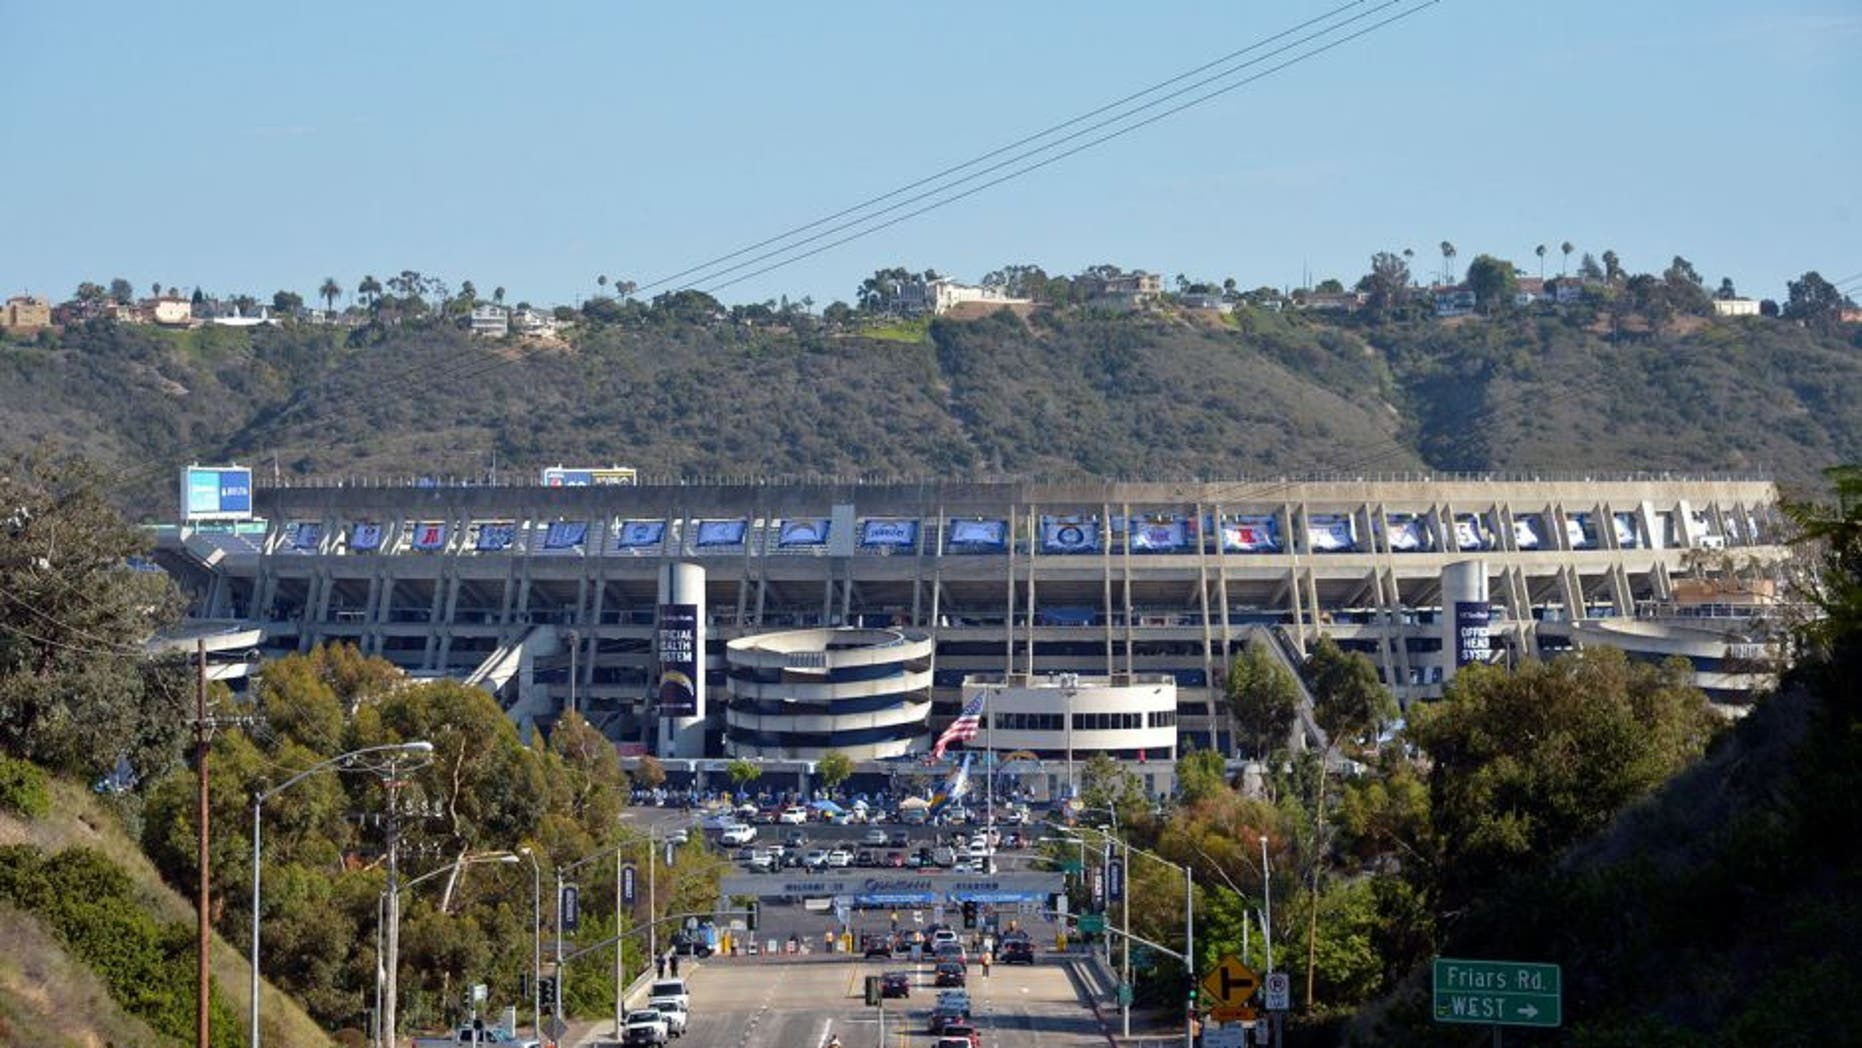 Aug 13, 2015; San Diego, CA, USA; General view of the Qualcomm Stadium exterior before the NFL preseason game between the Dallas Cowboys and San Diego Chargers. Mandatory Credit: Kirby Lee-USA TODAY Sports